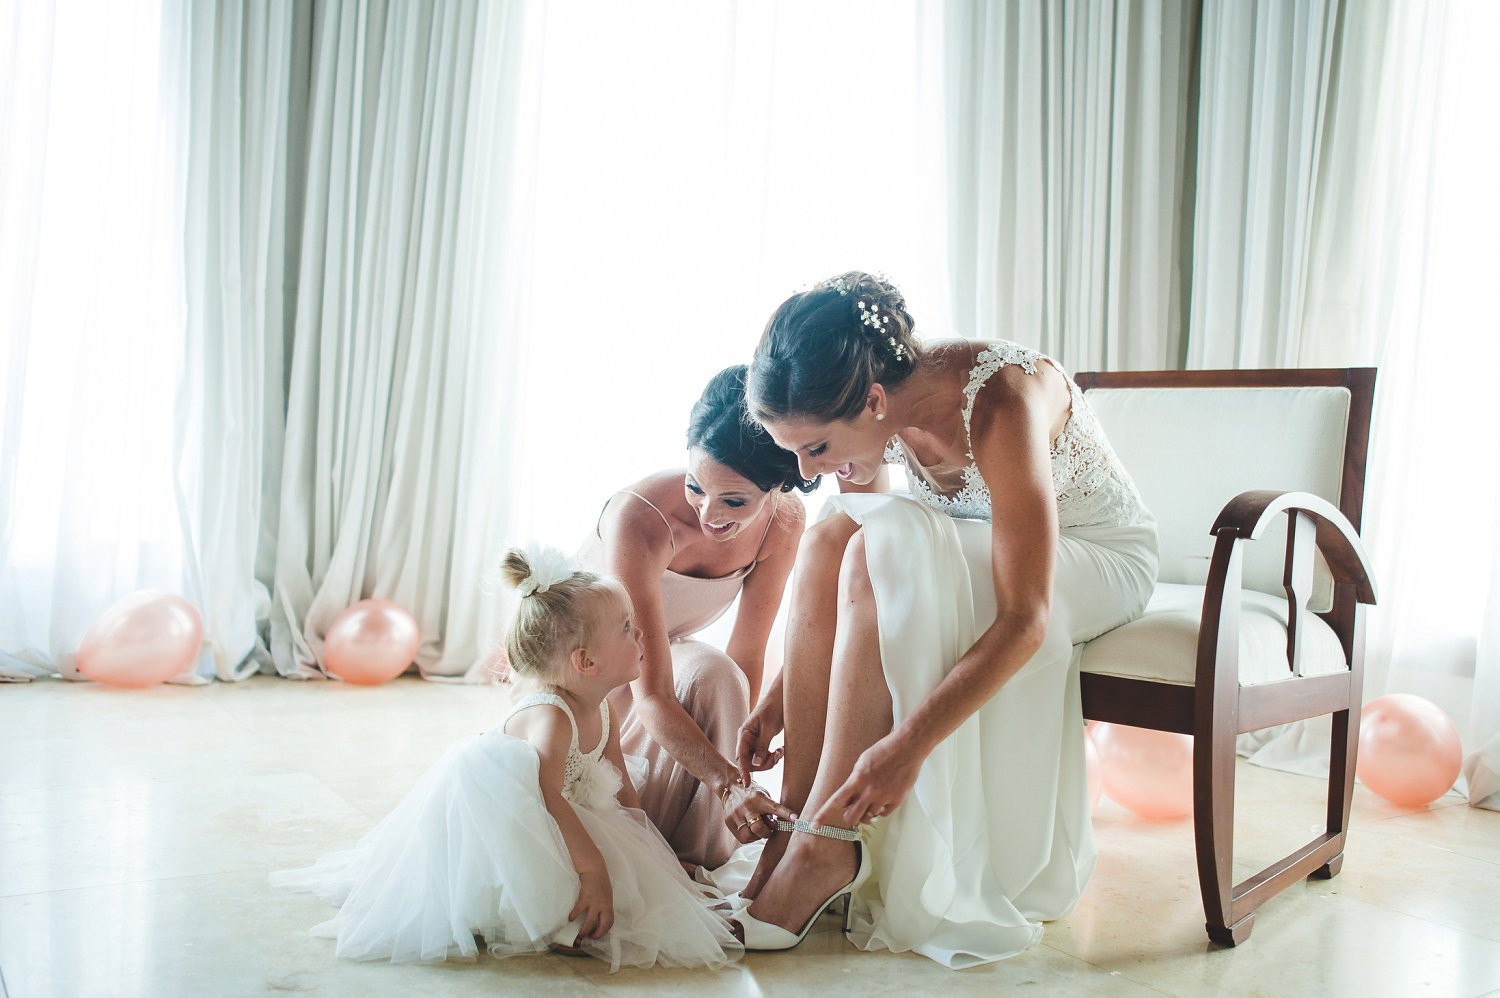 Bride gets ready and puts shoes on with flower girl on wedding day.